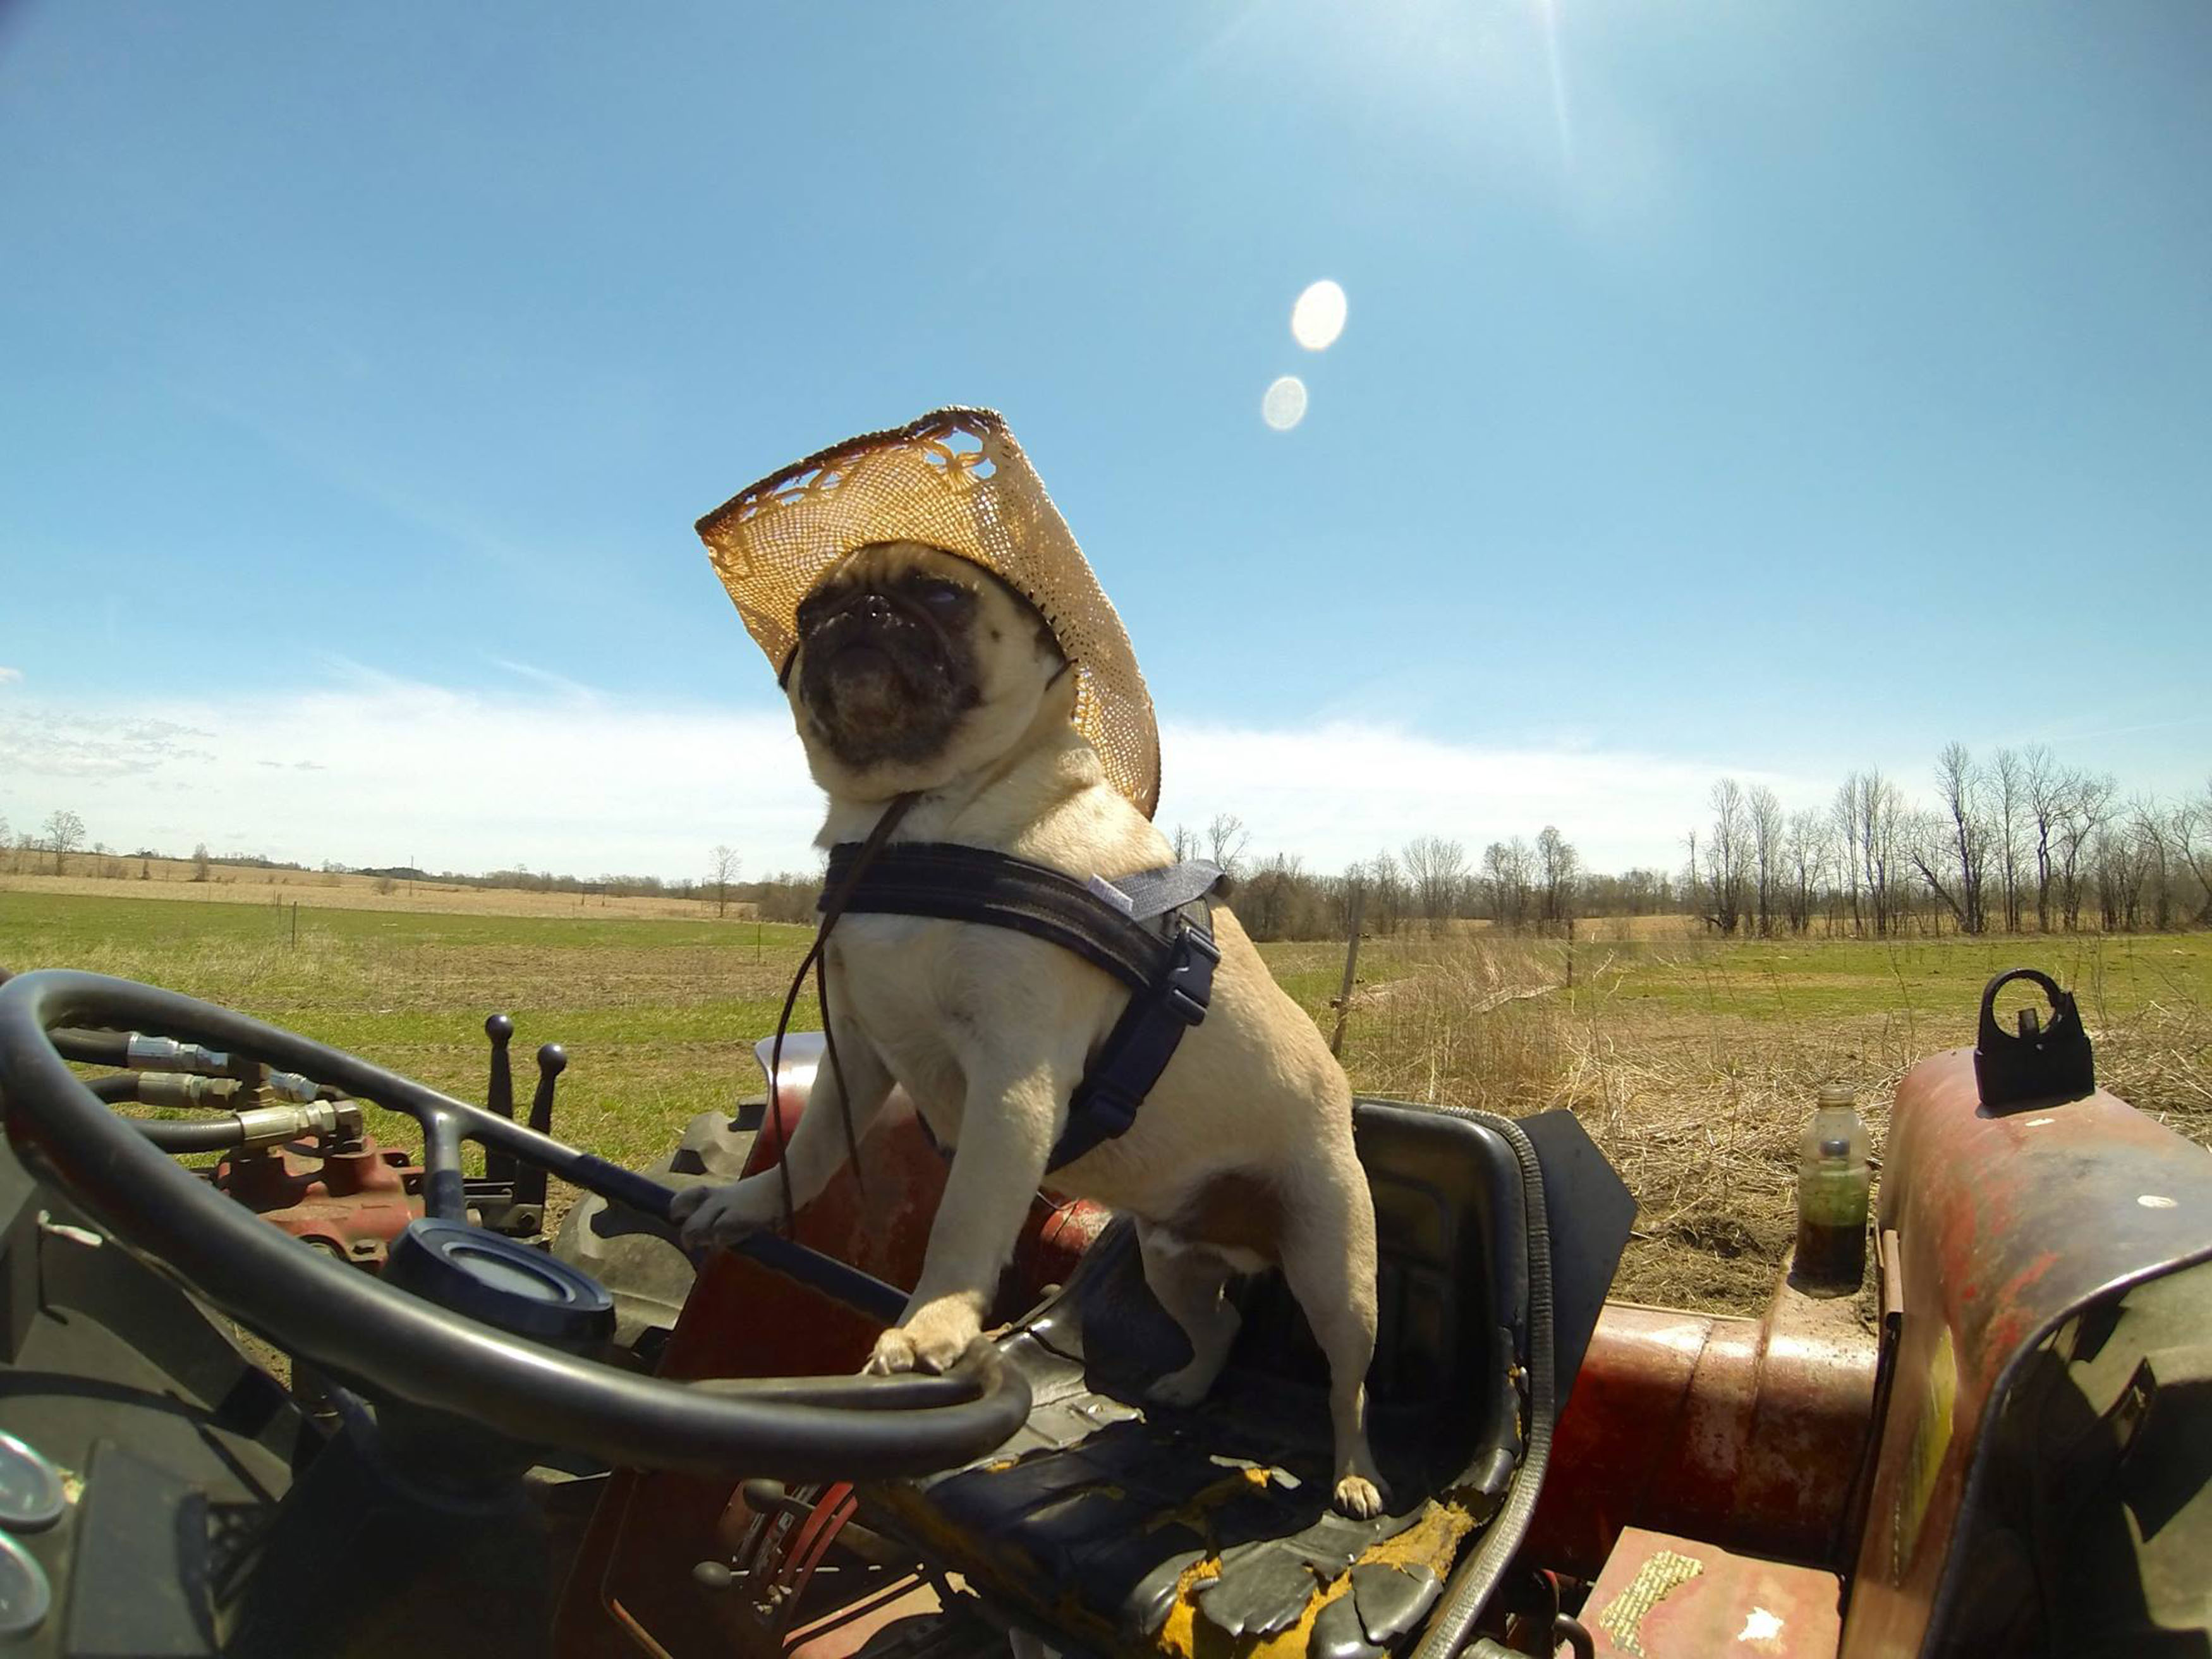 Atom the pug drives a construction truck, rides a horse and